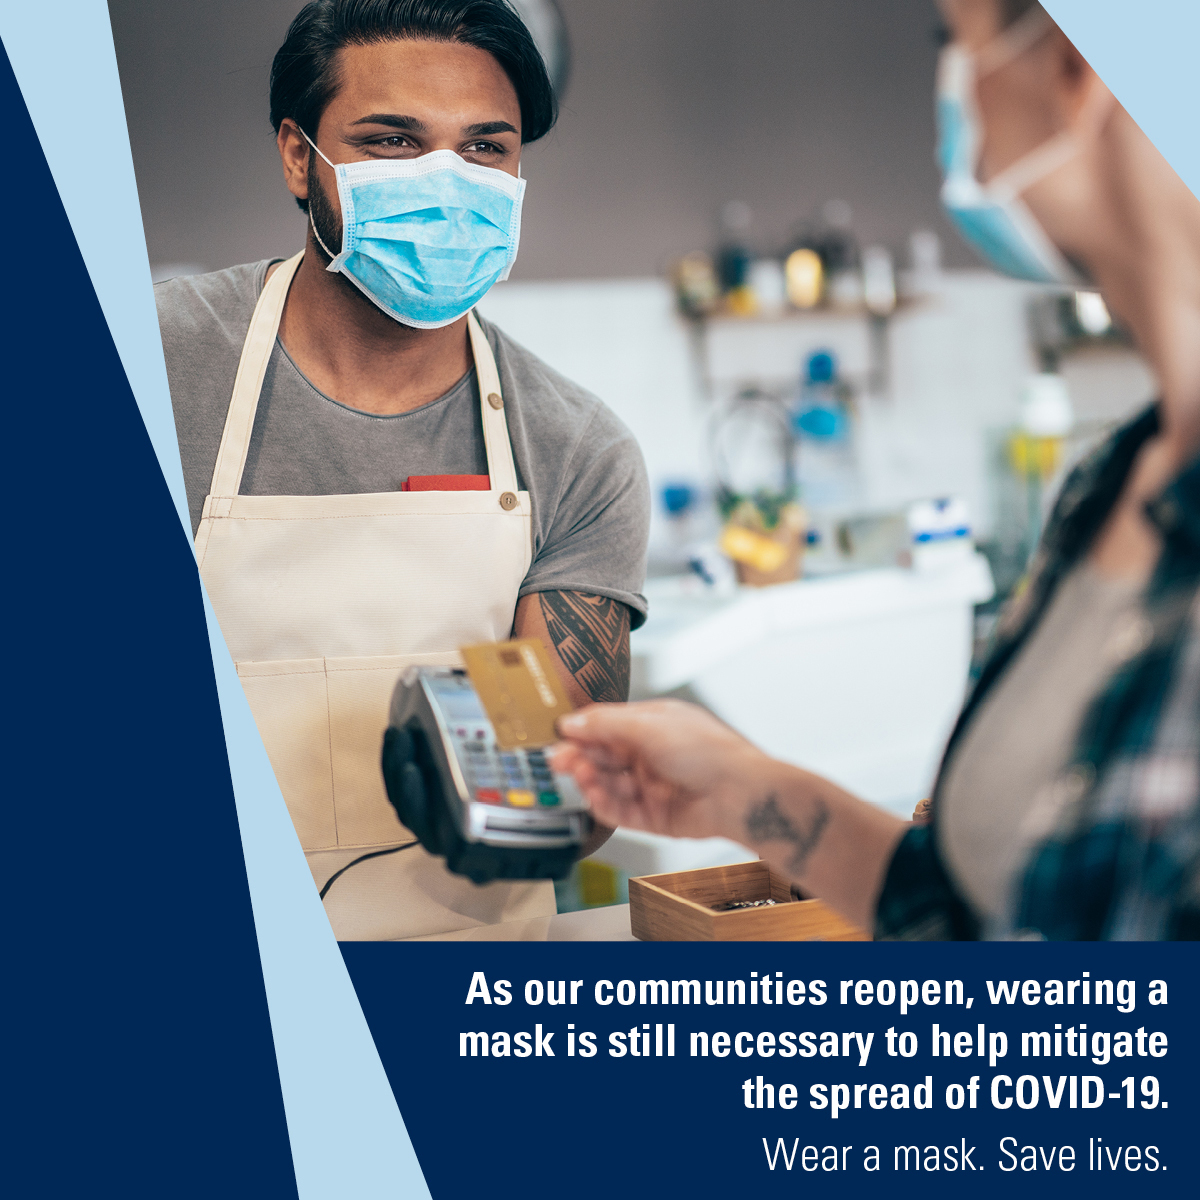 Cashier wears a mask. Caption: As our communities reopen, wearing a mask is still necessary to help mitigate the spread of COVID-19. Wear a Mask. Save lives.